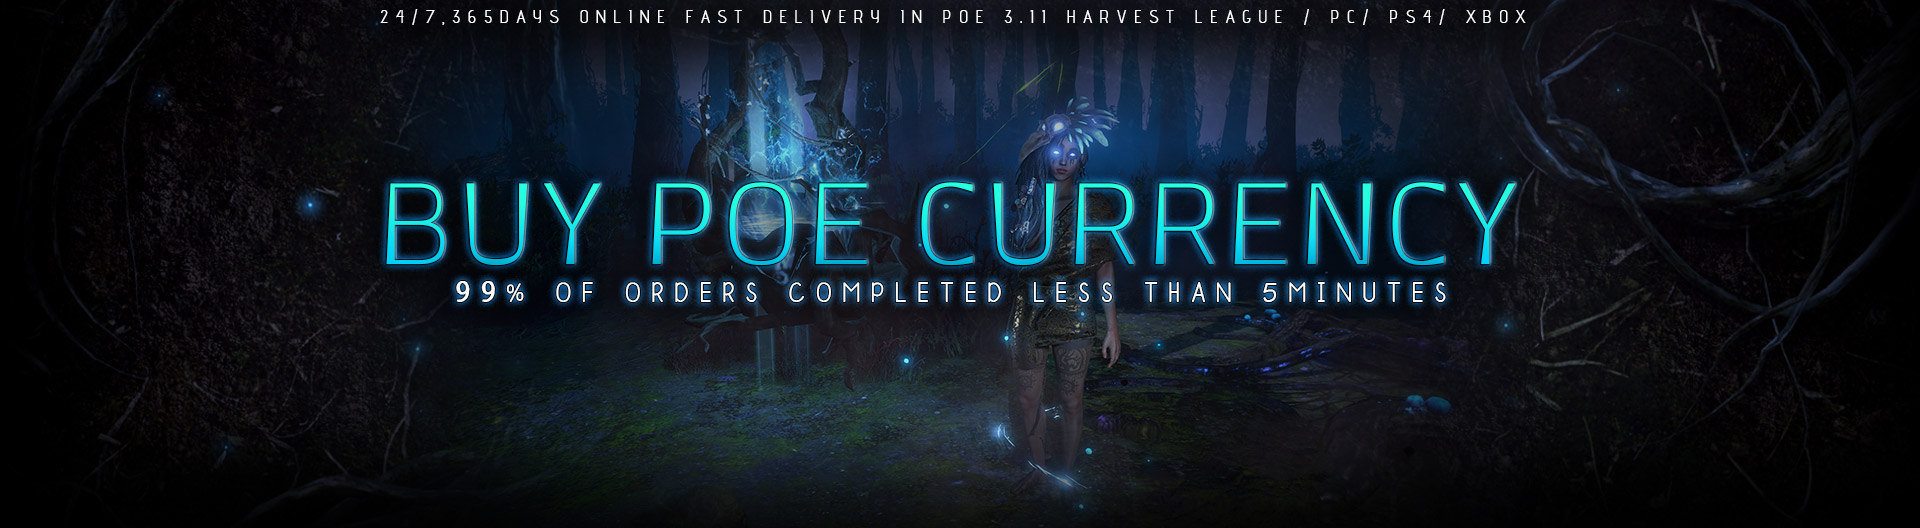 Buy Cheap PoE Currency in 3.11 Harvest